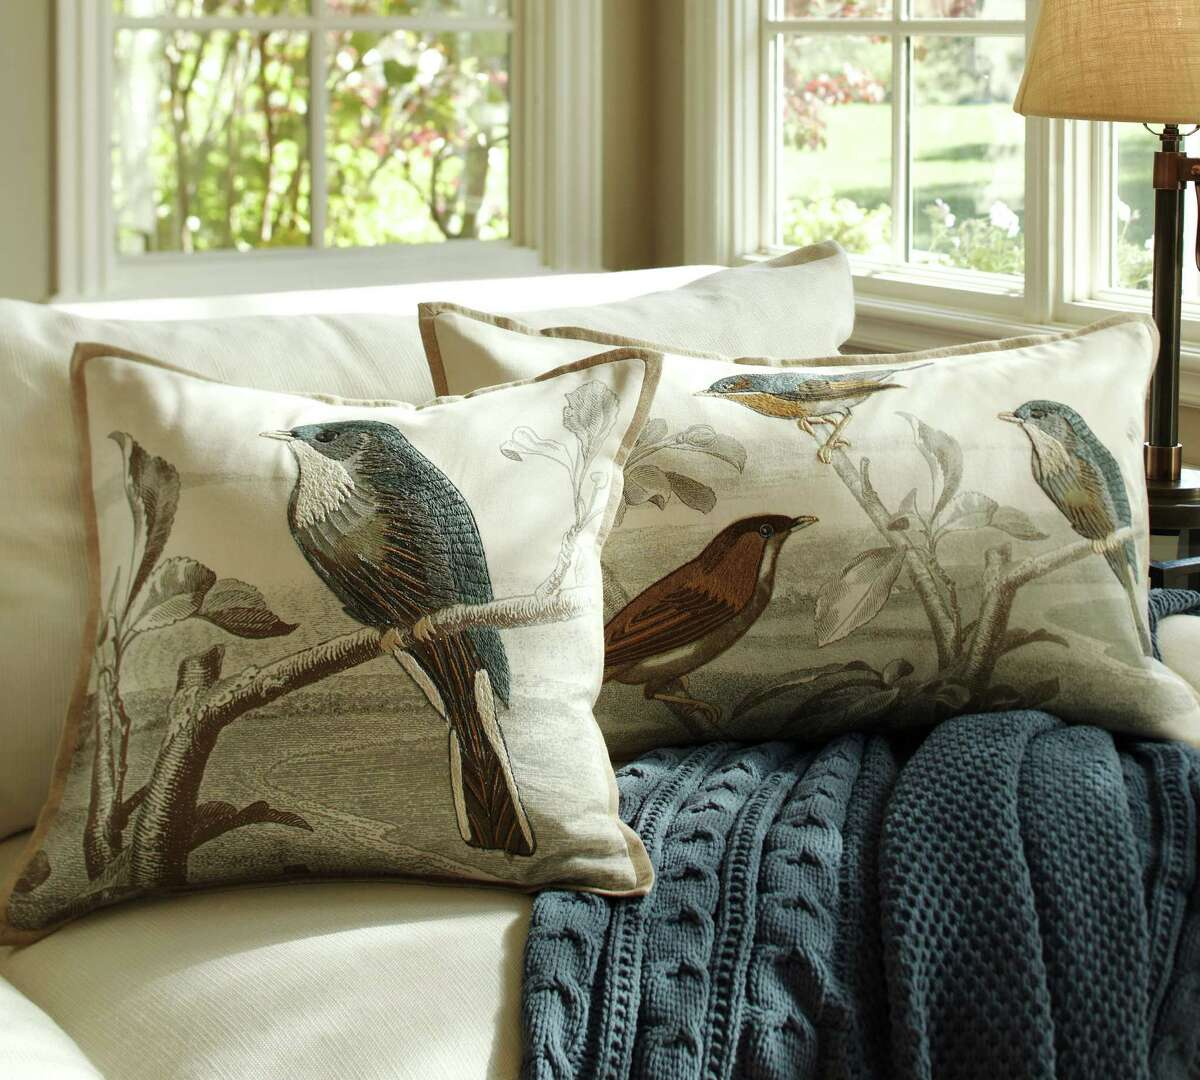 This publicity image provided by Pottery Barn shows Sky Bird embroidered pillow covers from Pottery Barn. Visiting this spring's decor previews often felt like exploring an art gallery. There was an artistic vibe in everything from dinnerware to drapery, art photographs to textiles. (AP Photo/Pottery Barn)